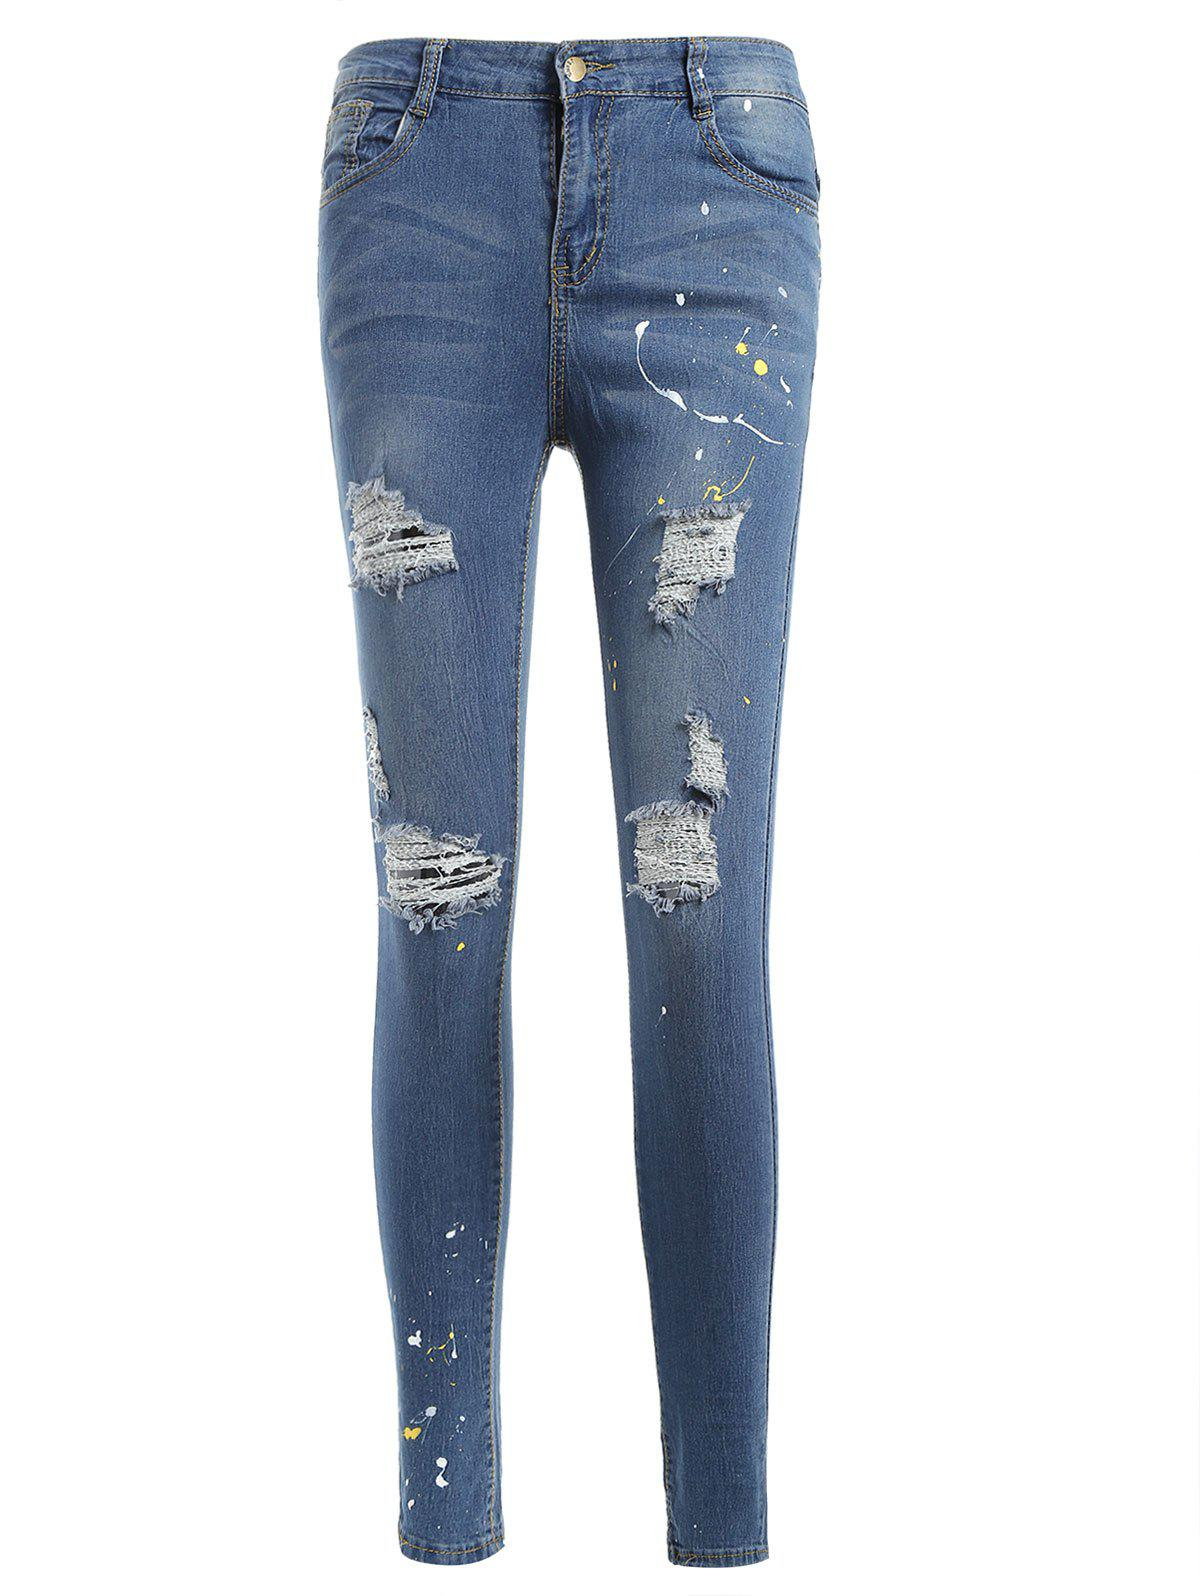 Trendy Spray Paint Distressed Jeans